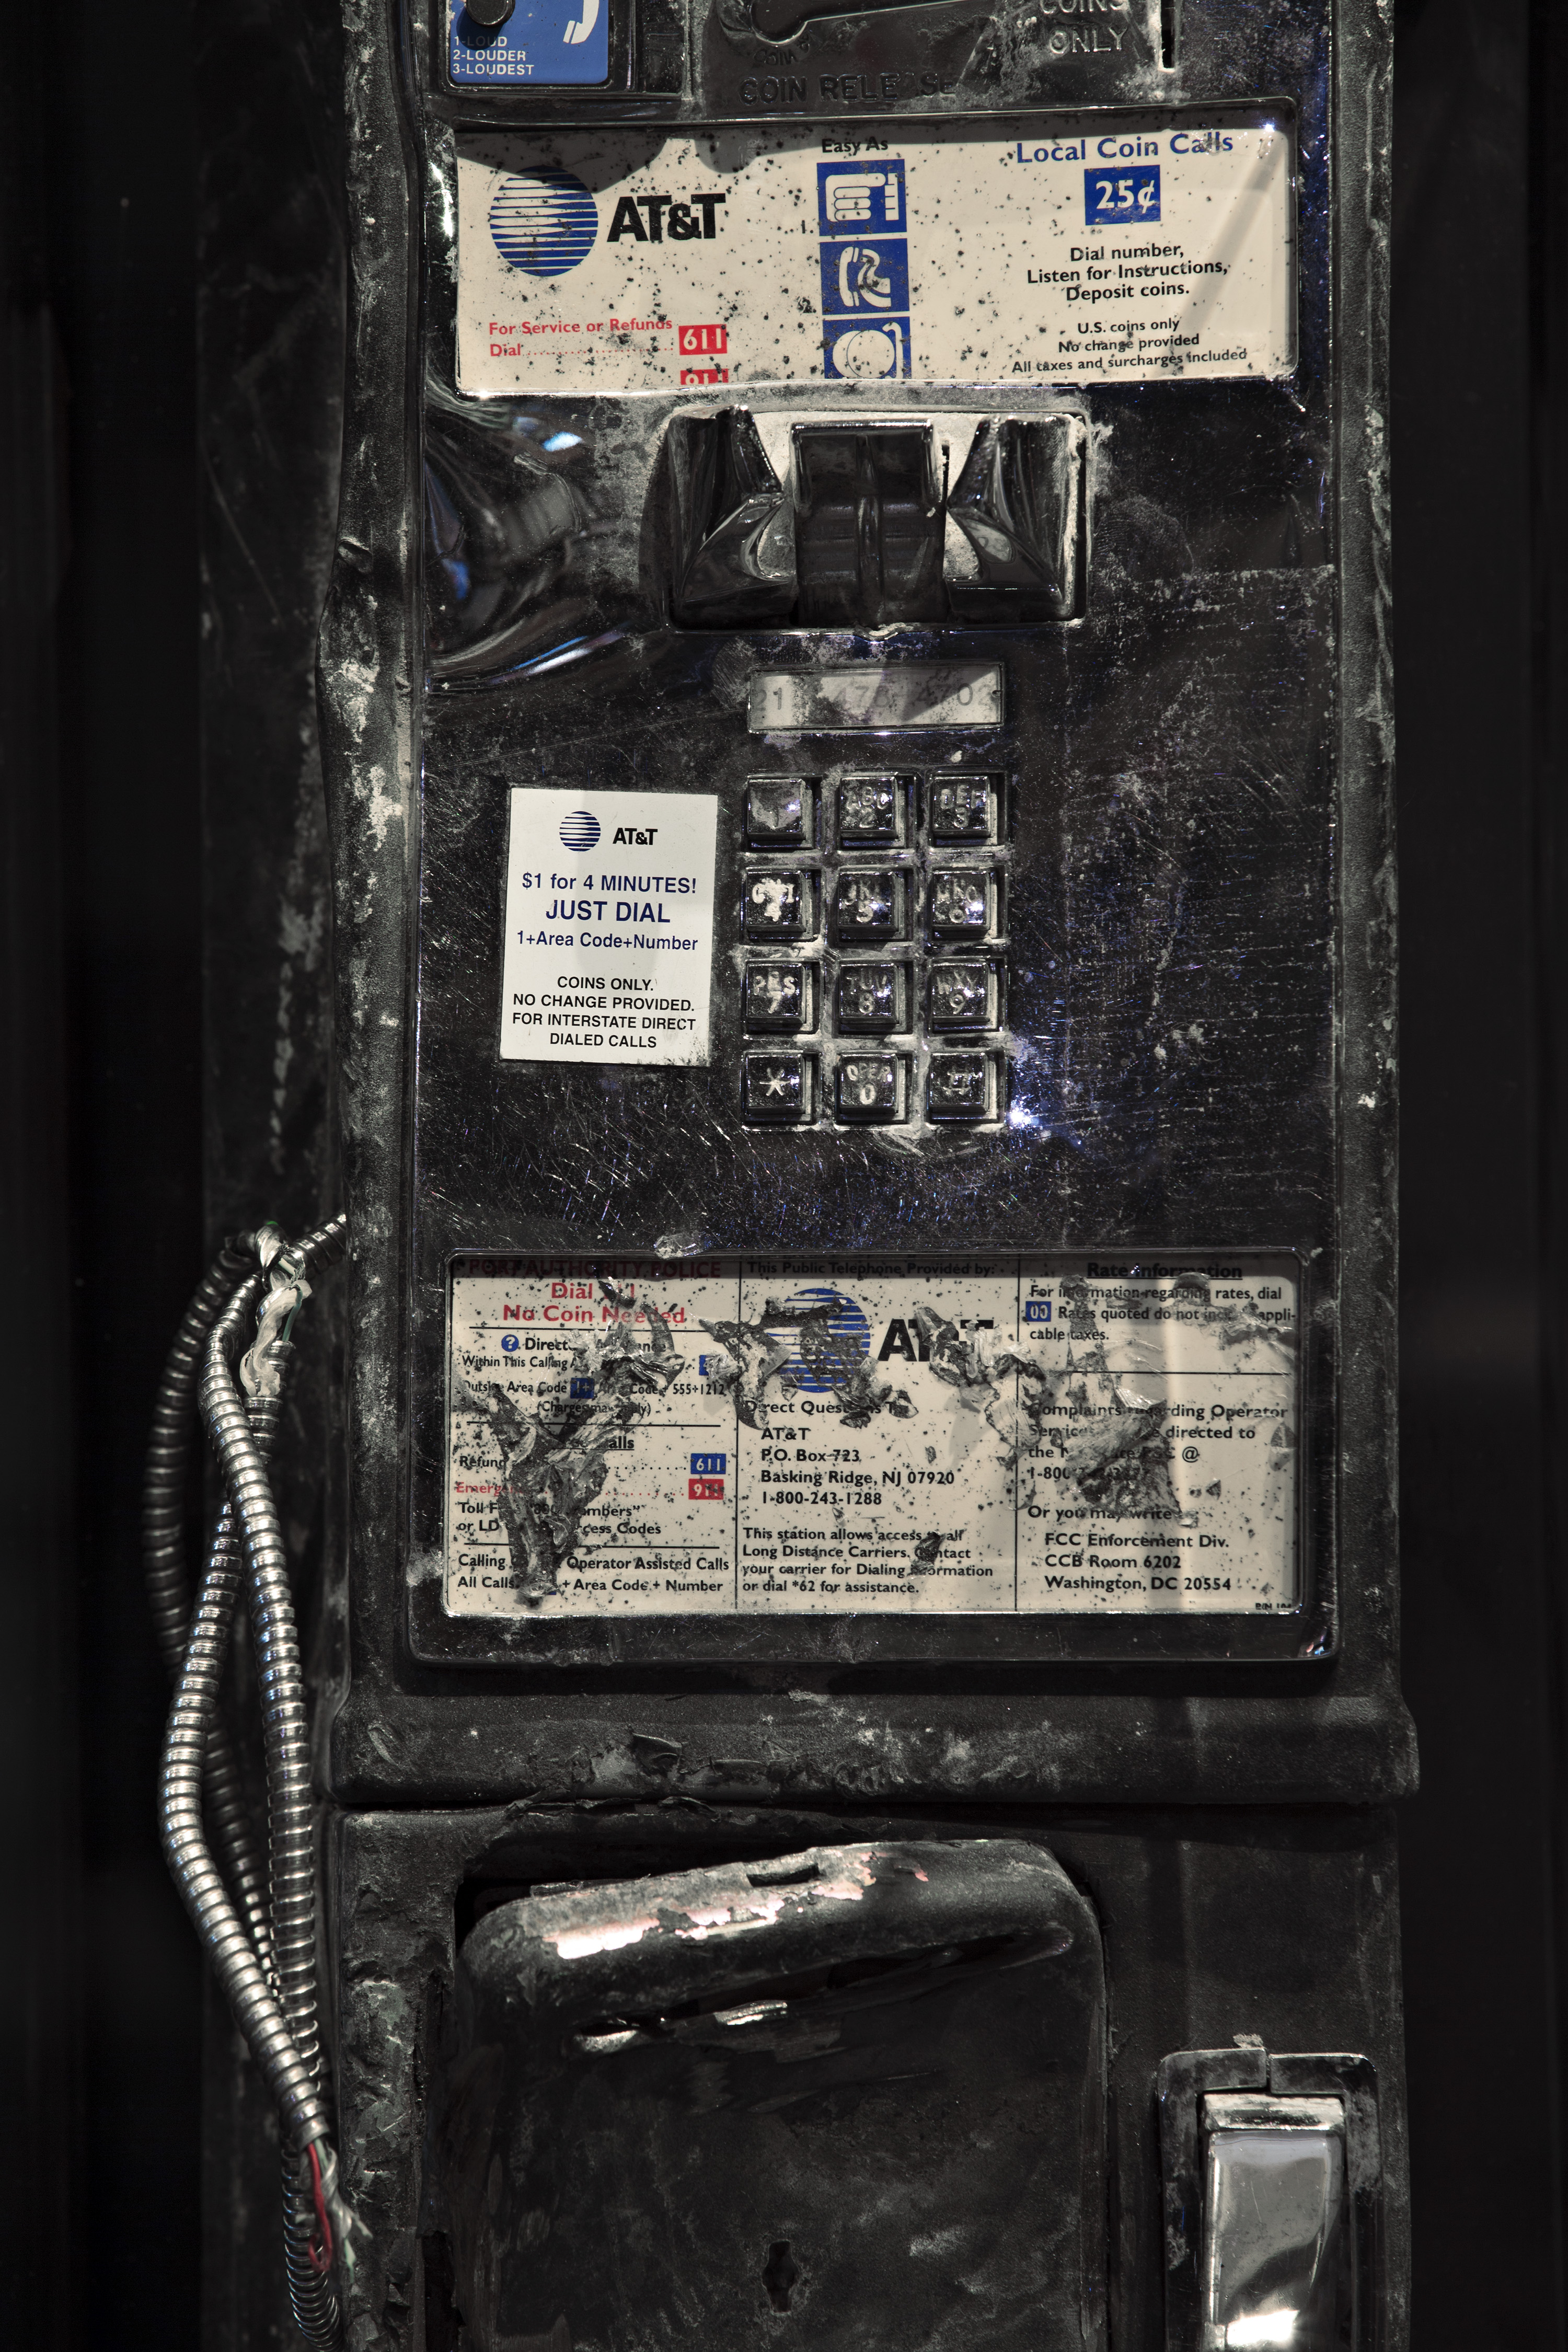 This pay phone, found in the wreckage at Ground Zero,   was once installed on the 107th floor observation deck of the south tower, more than a quarter mile above the street.